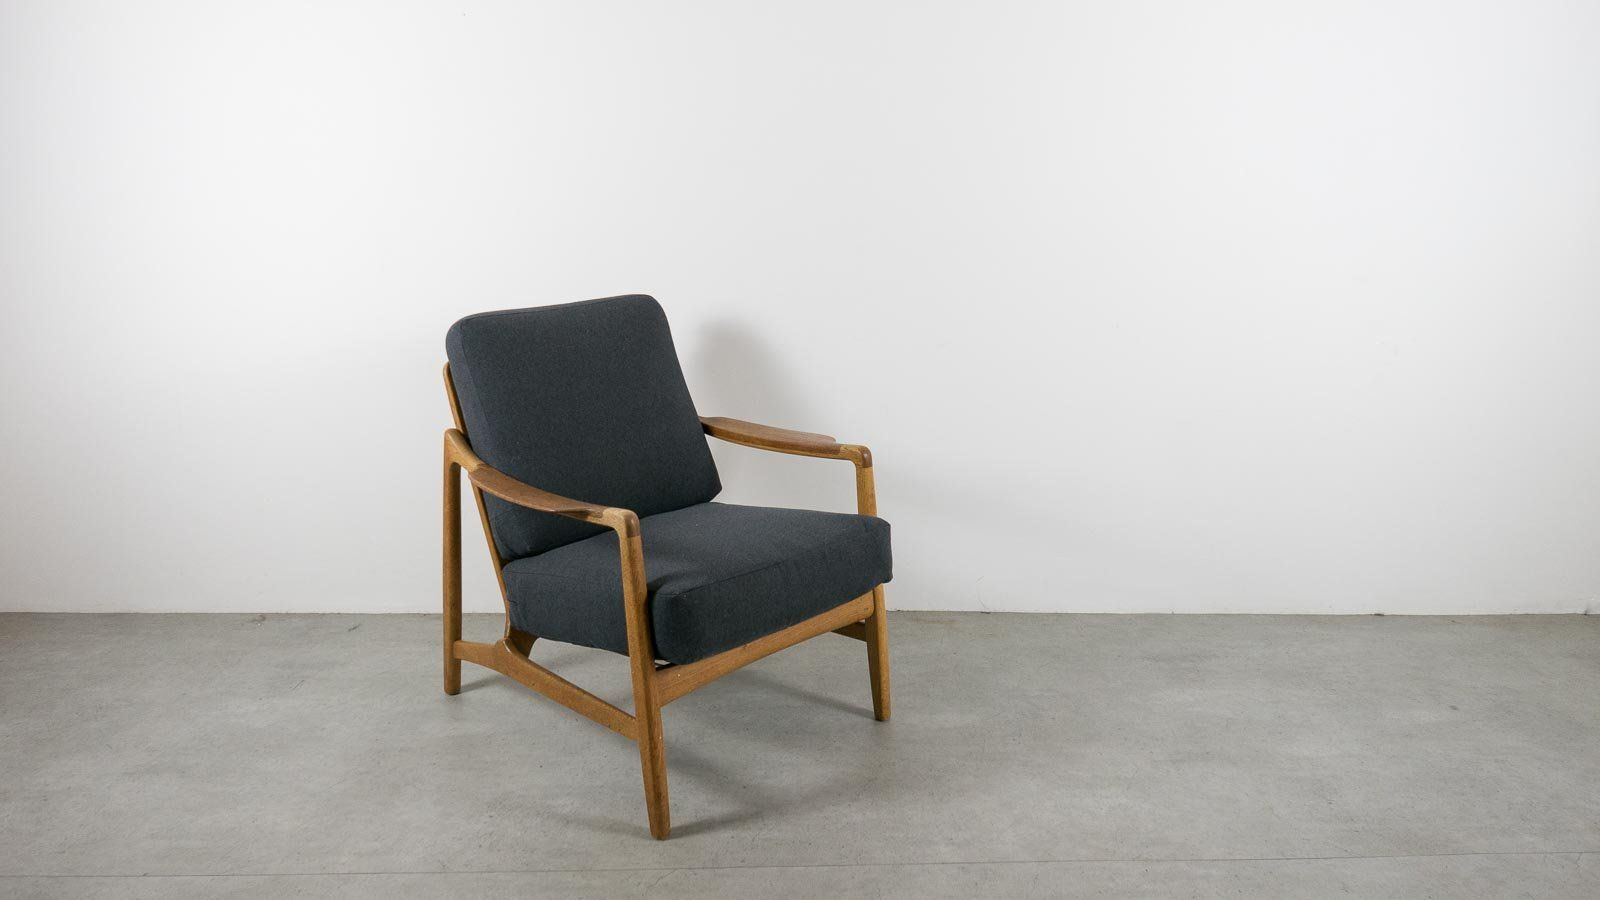 EBTD | Tove & Edvard Kindt Larsen Lounge Chair for France & Daverkosen – everythingbutthedog